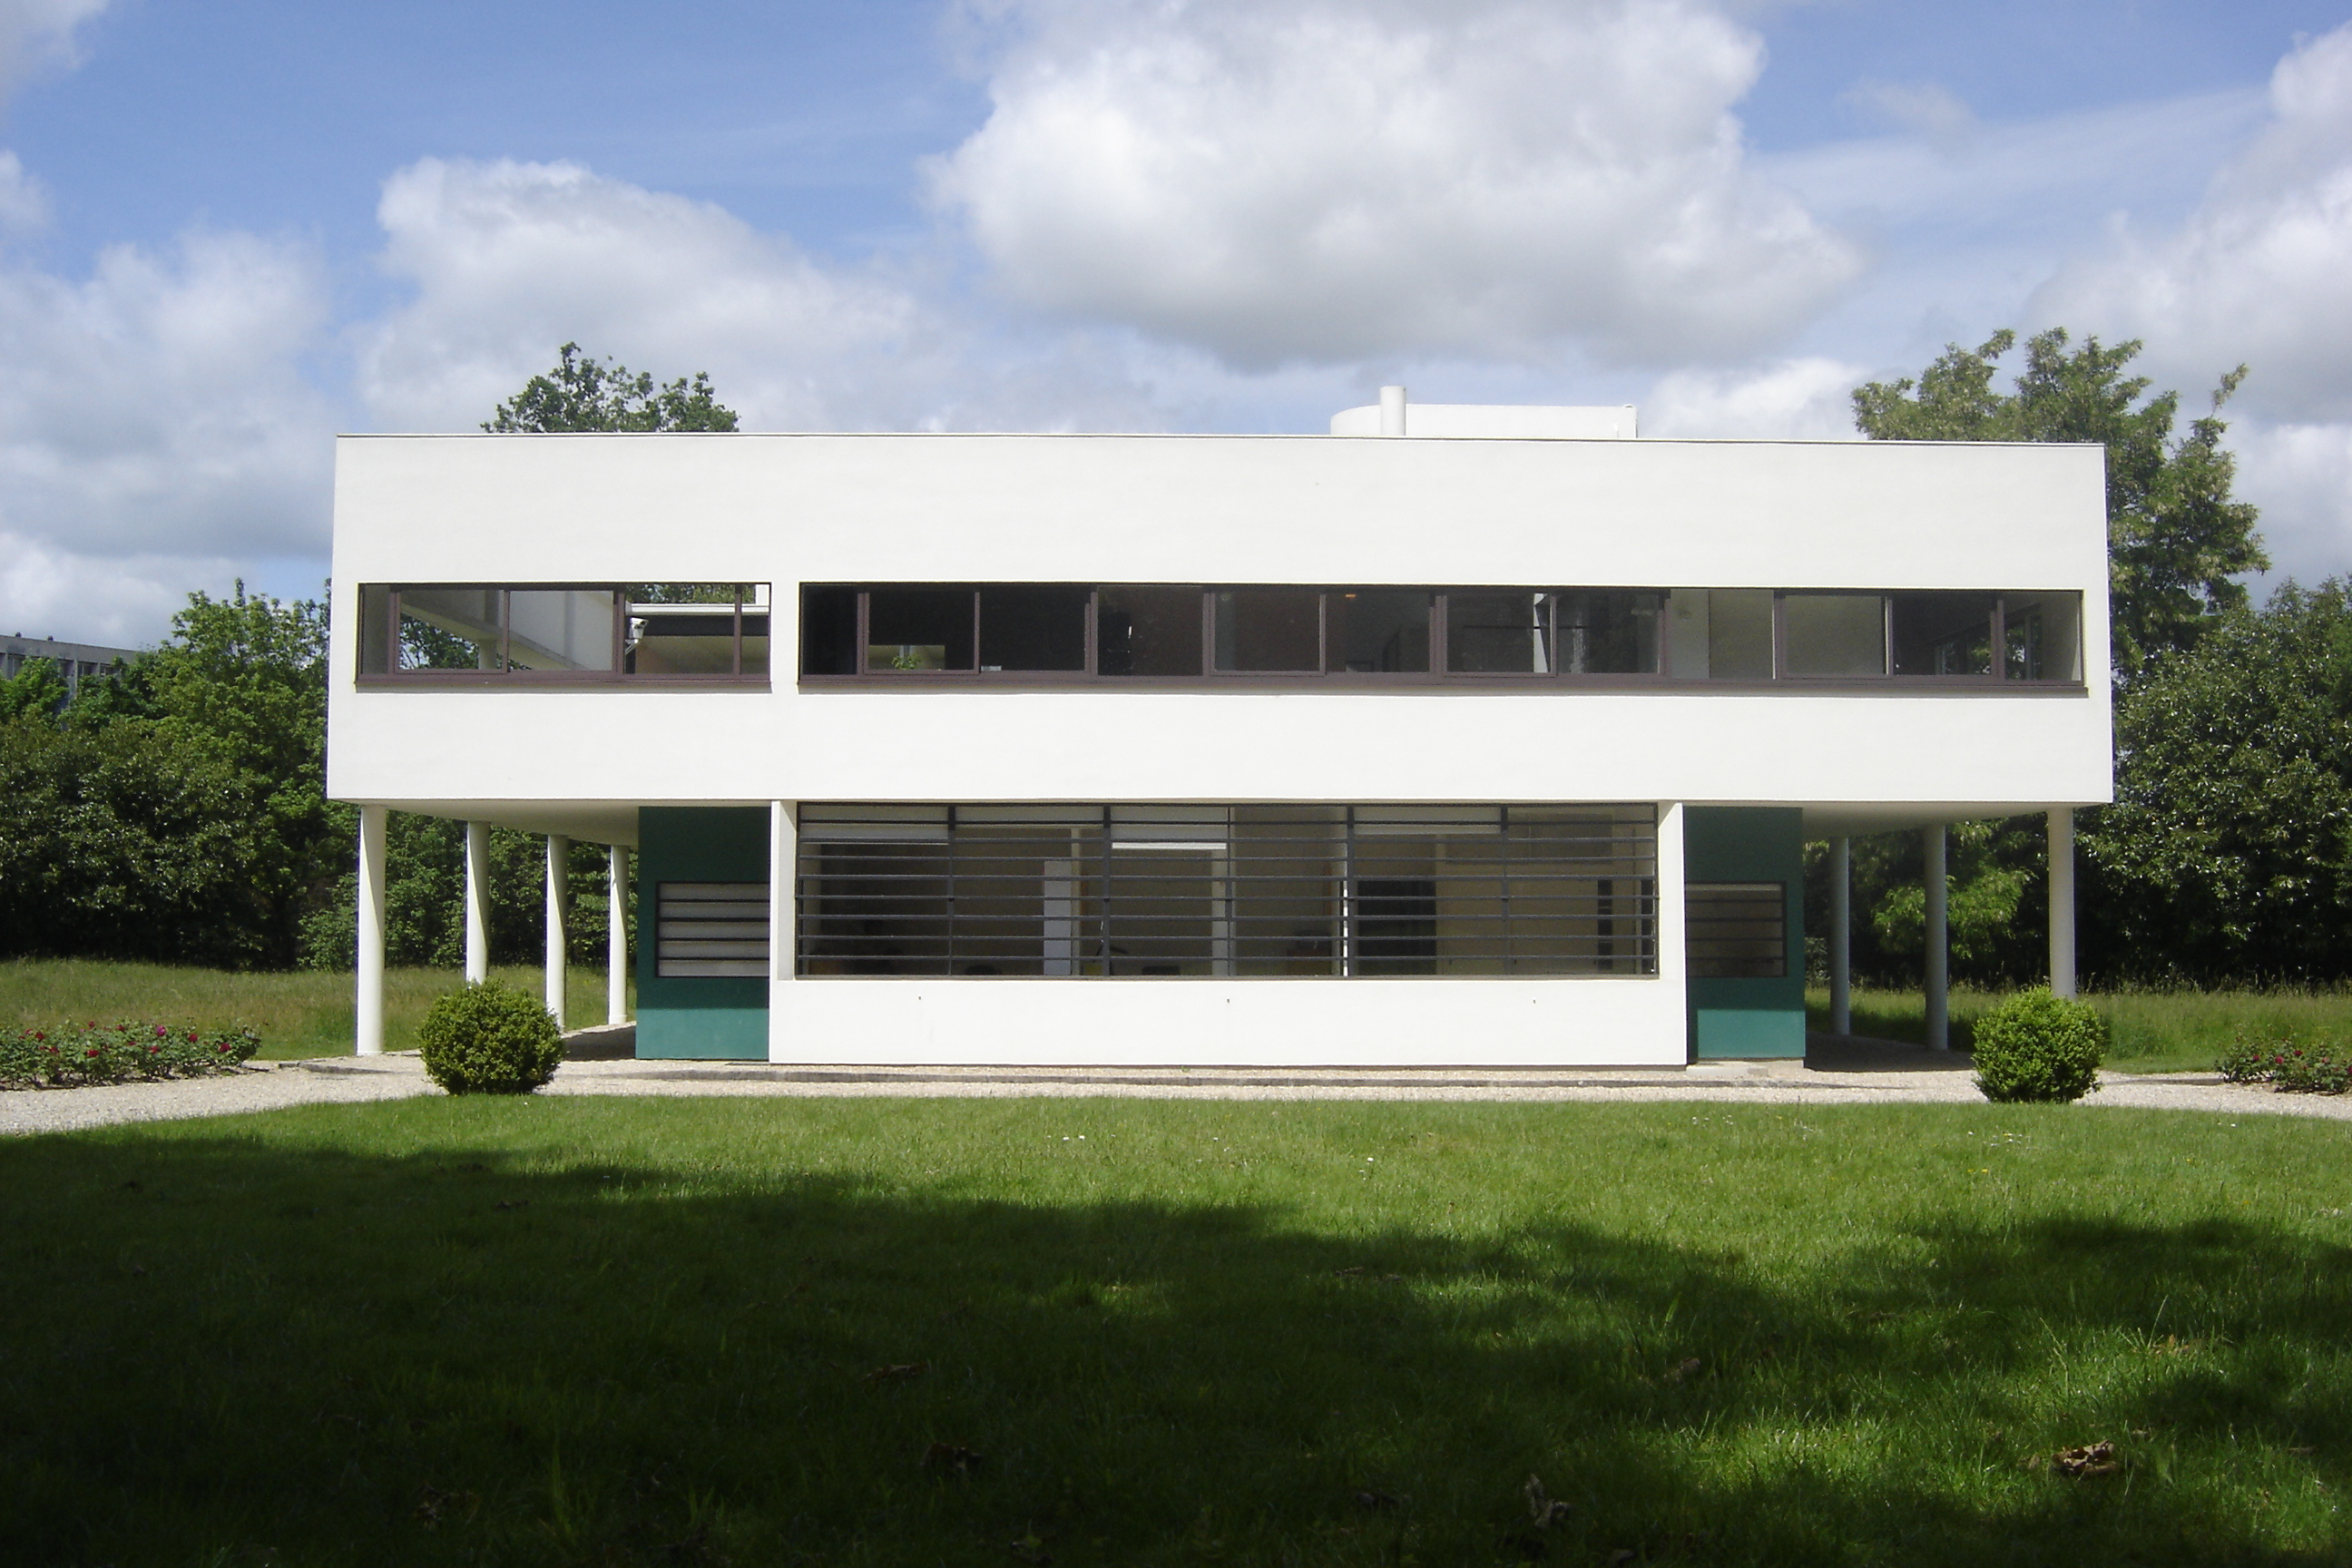 Villa savoye le corbusier flickr photo sharing for Poissy le corbusier